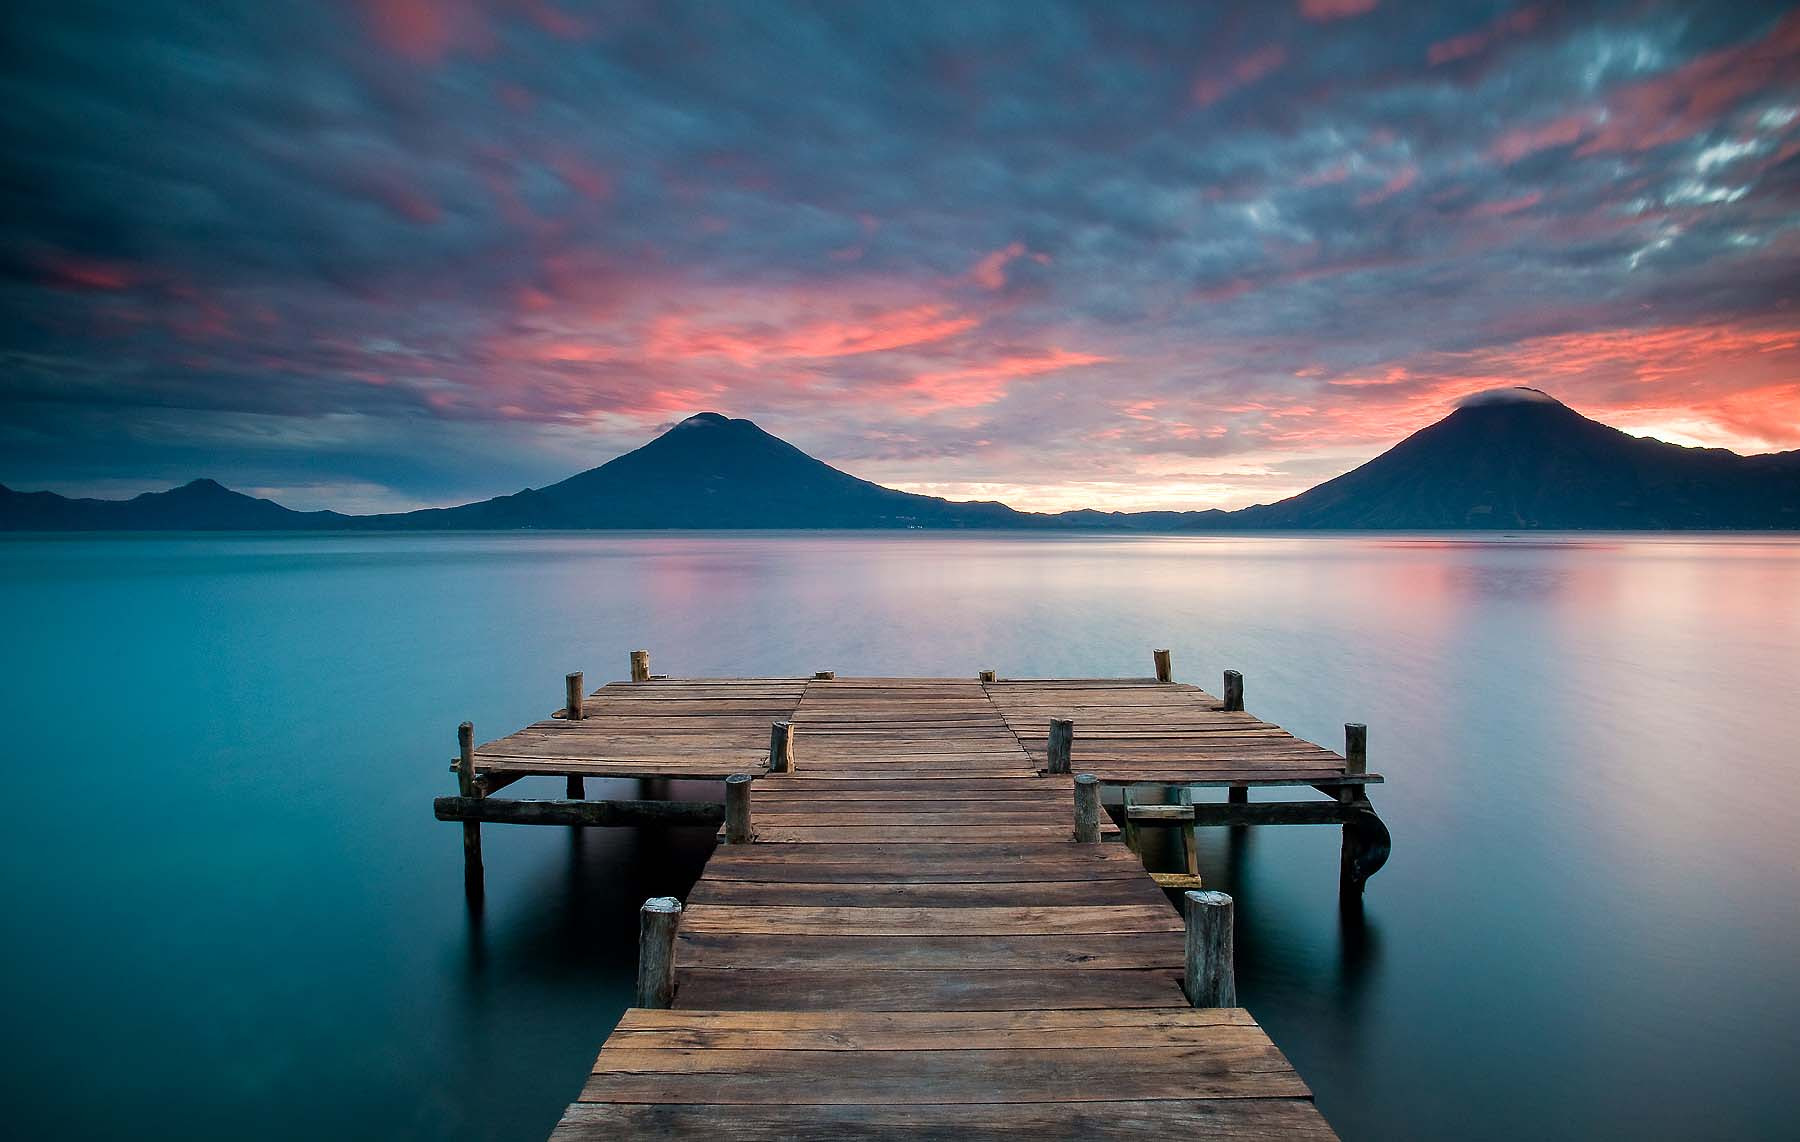 Laguna-Lake-Atitlan-Sunset-Highlands-Guatemala-Travel-Photographer